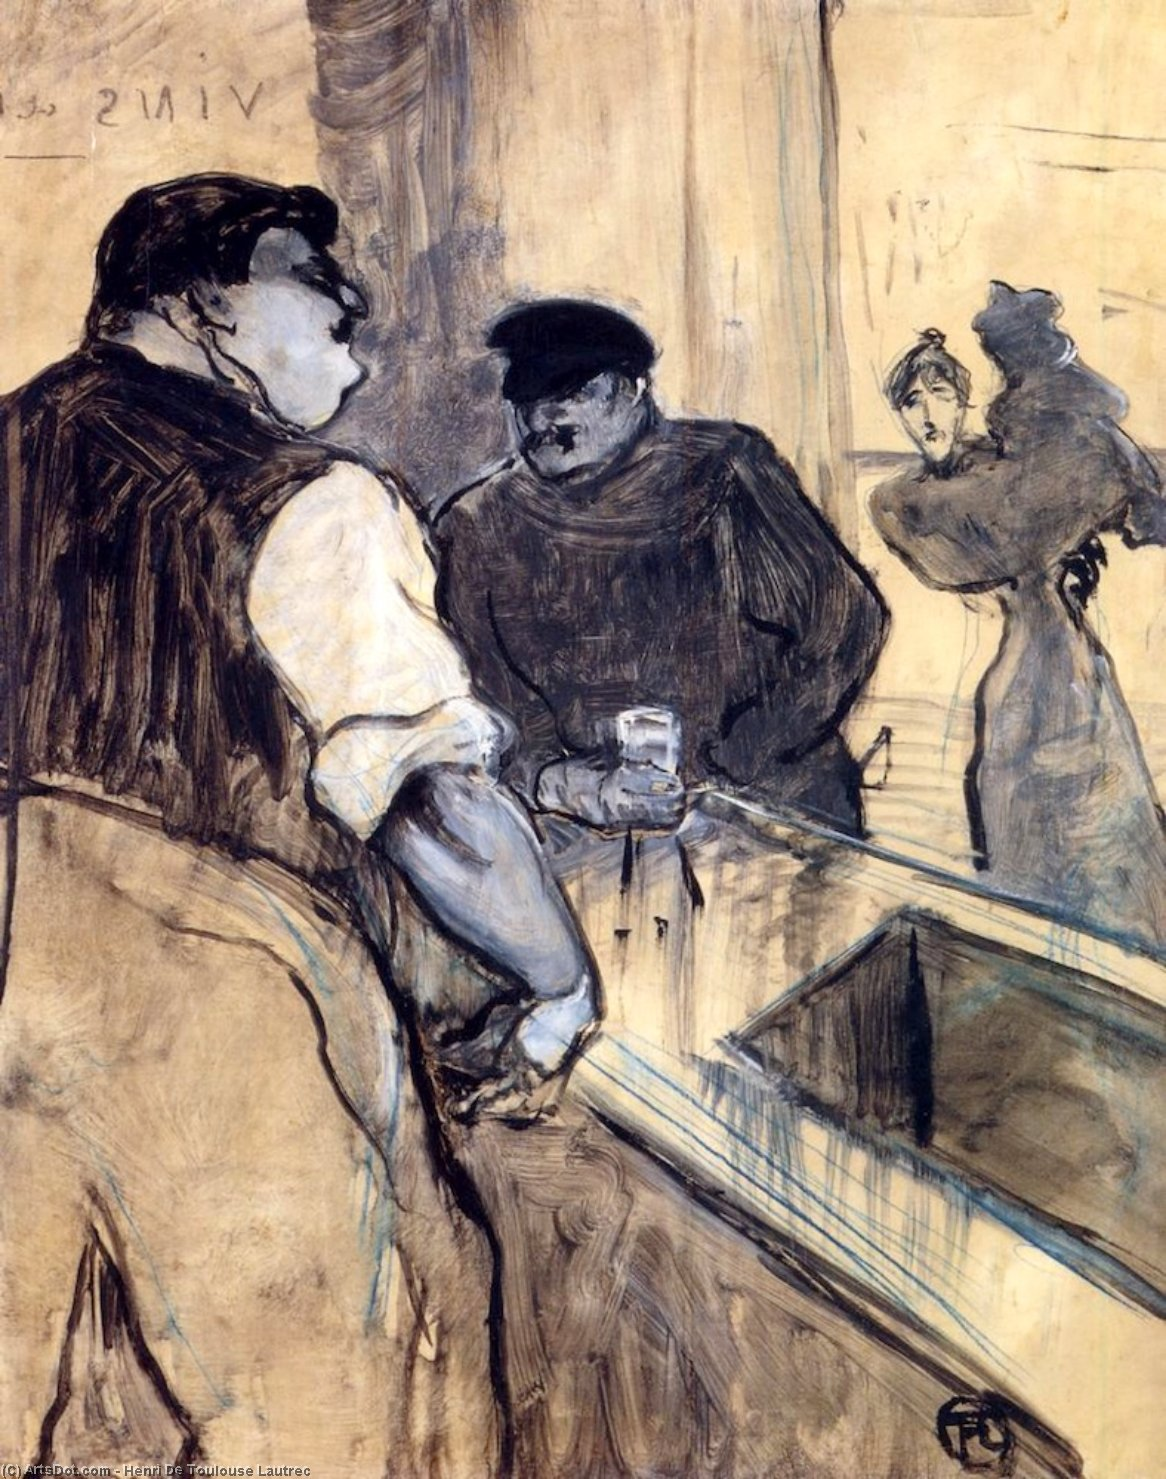 The Bartender, 1900 by Henri De Toulouse Lautrec (1864-1901, France)